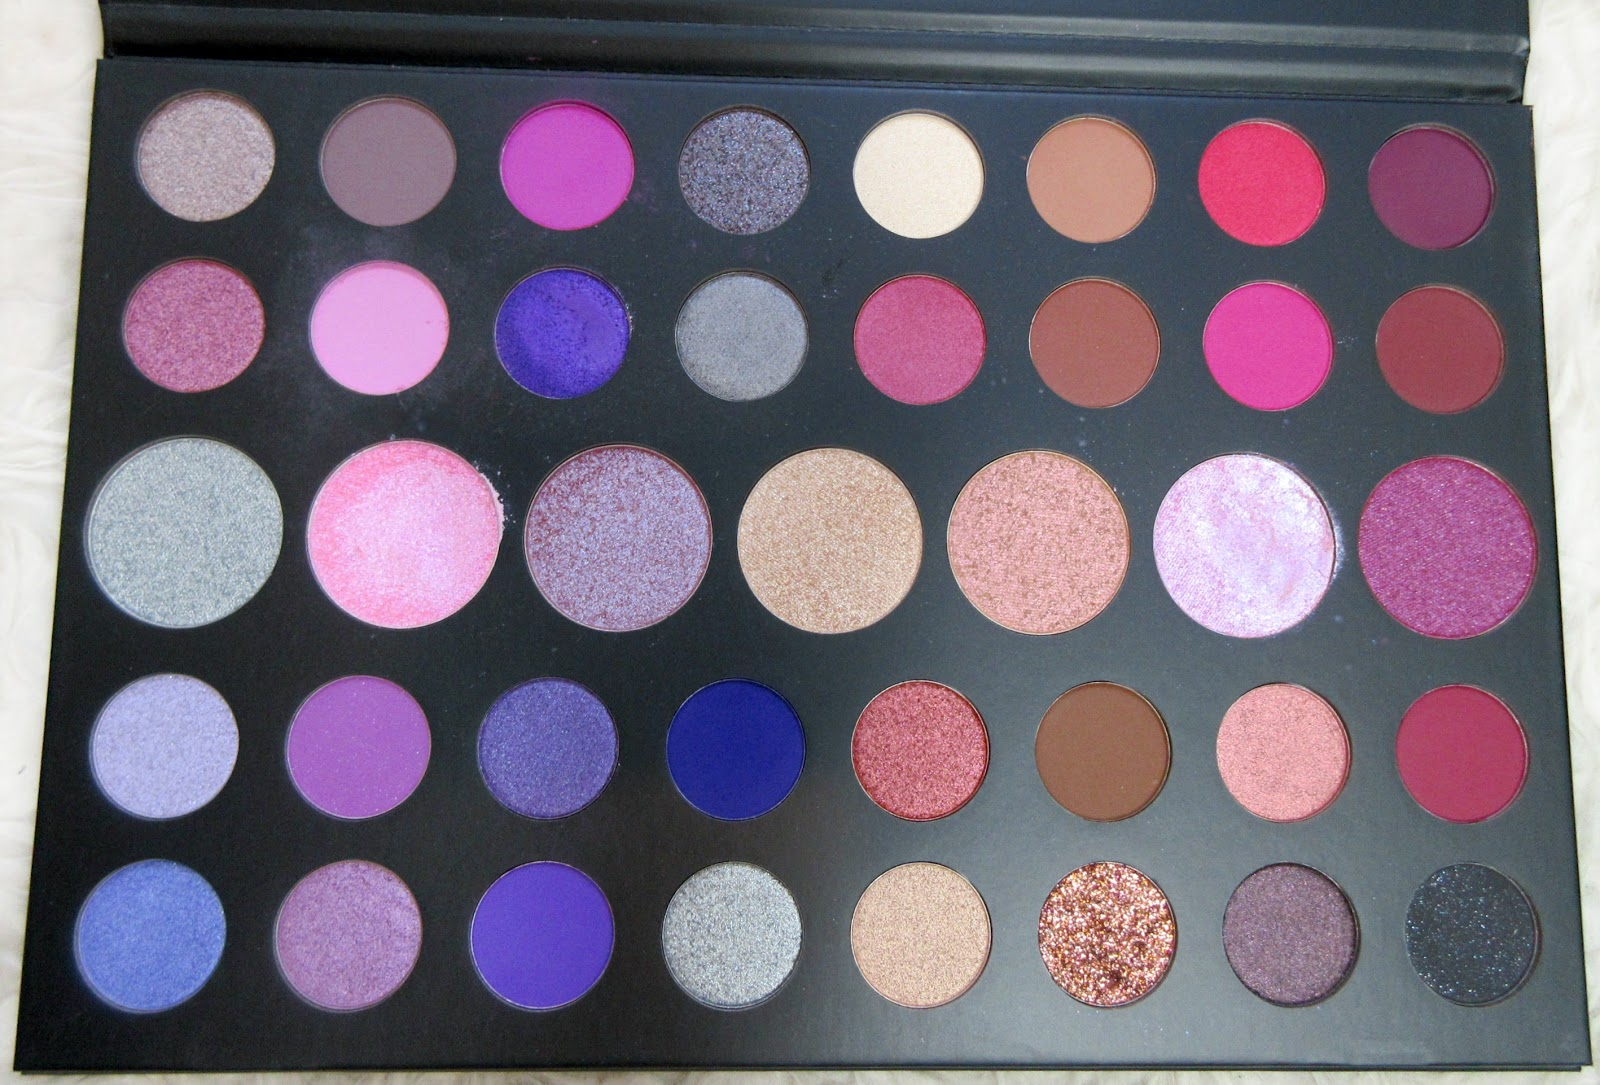 Such A Gem Artistry Palette - 39S by Morphe #12